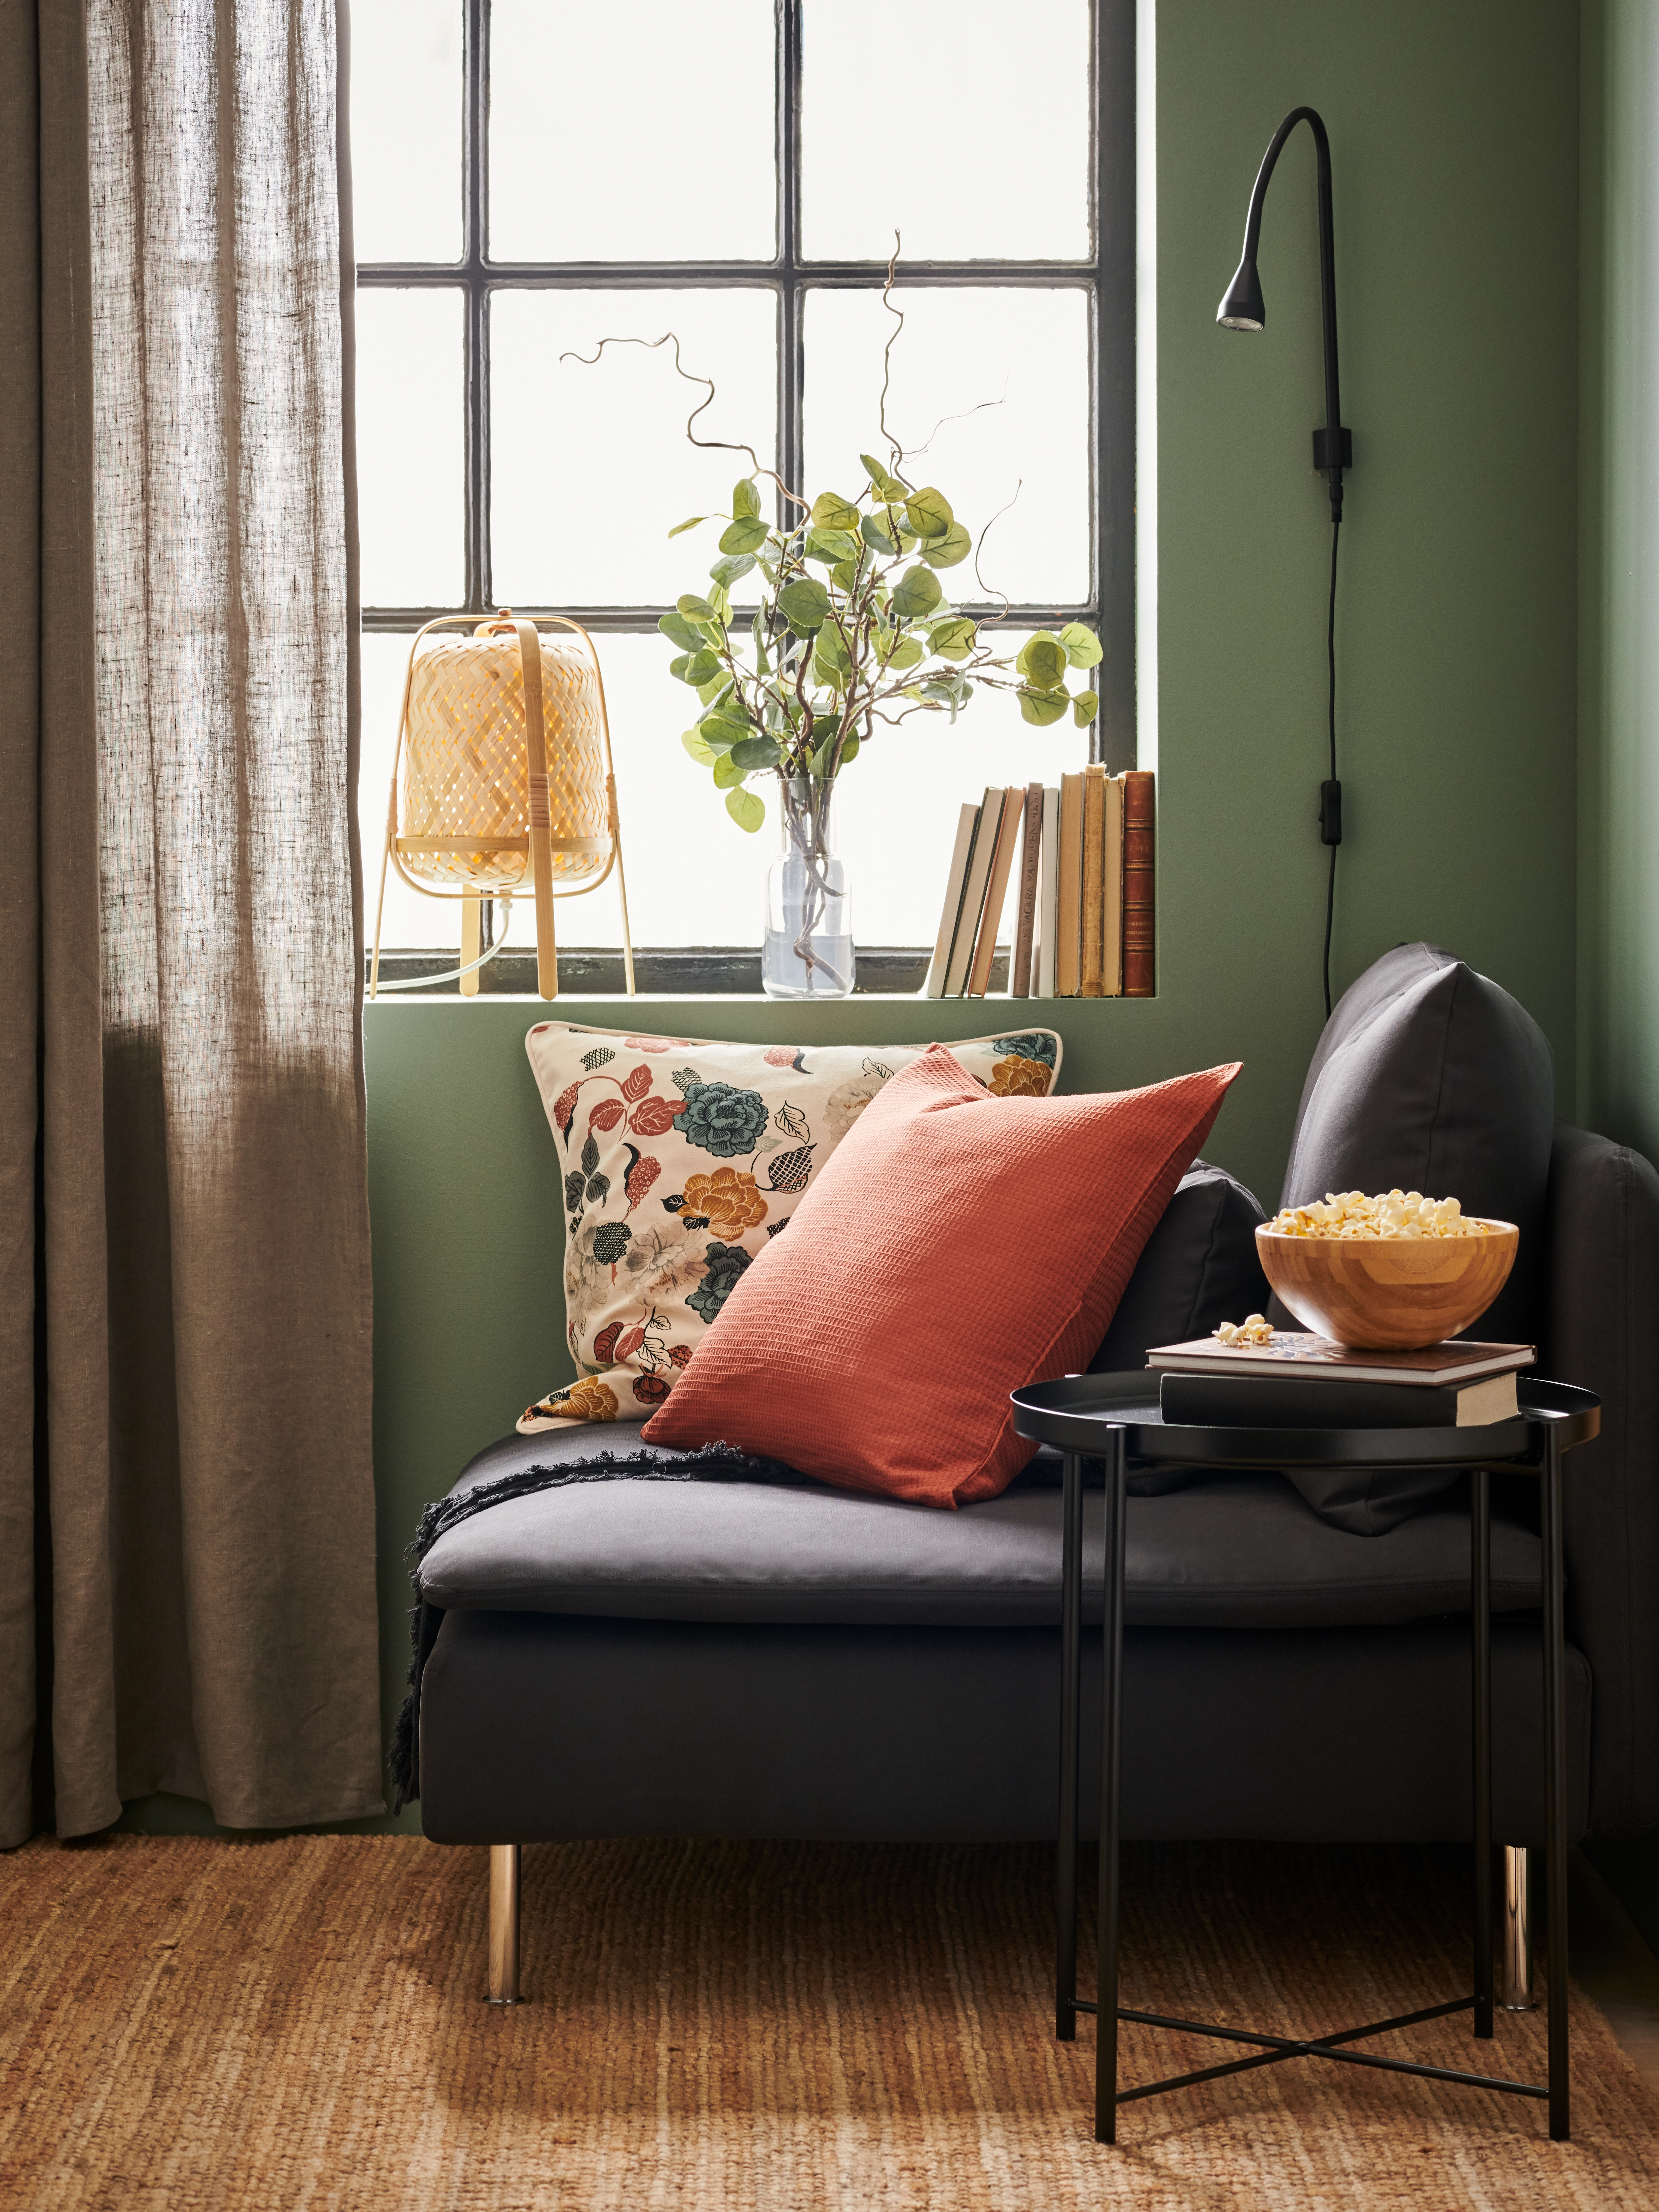 An armchair in a living-room corner. Cushions with EBBATILDA and TROLLMÅL covers, SMYCKA artificial leaves in a window above.